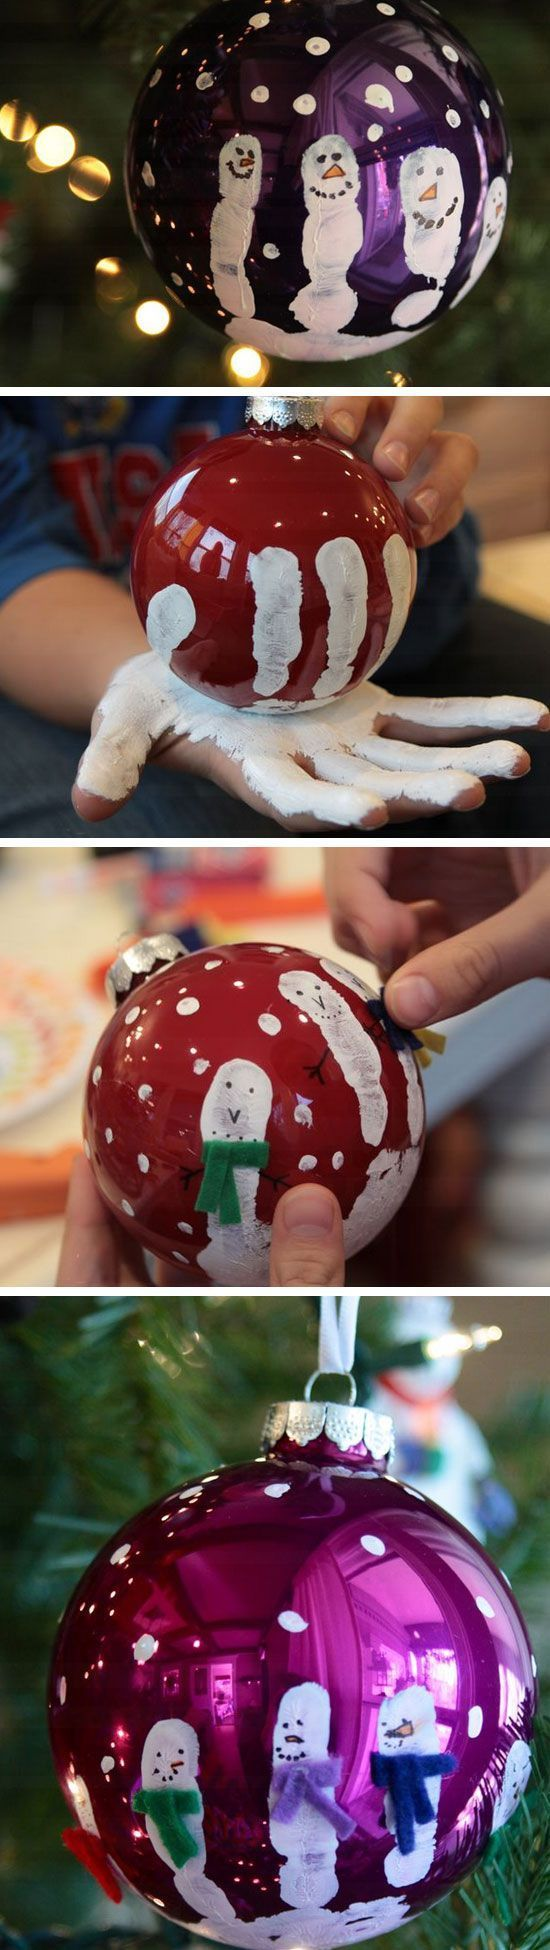 19. The Handprint Snowman Ornament